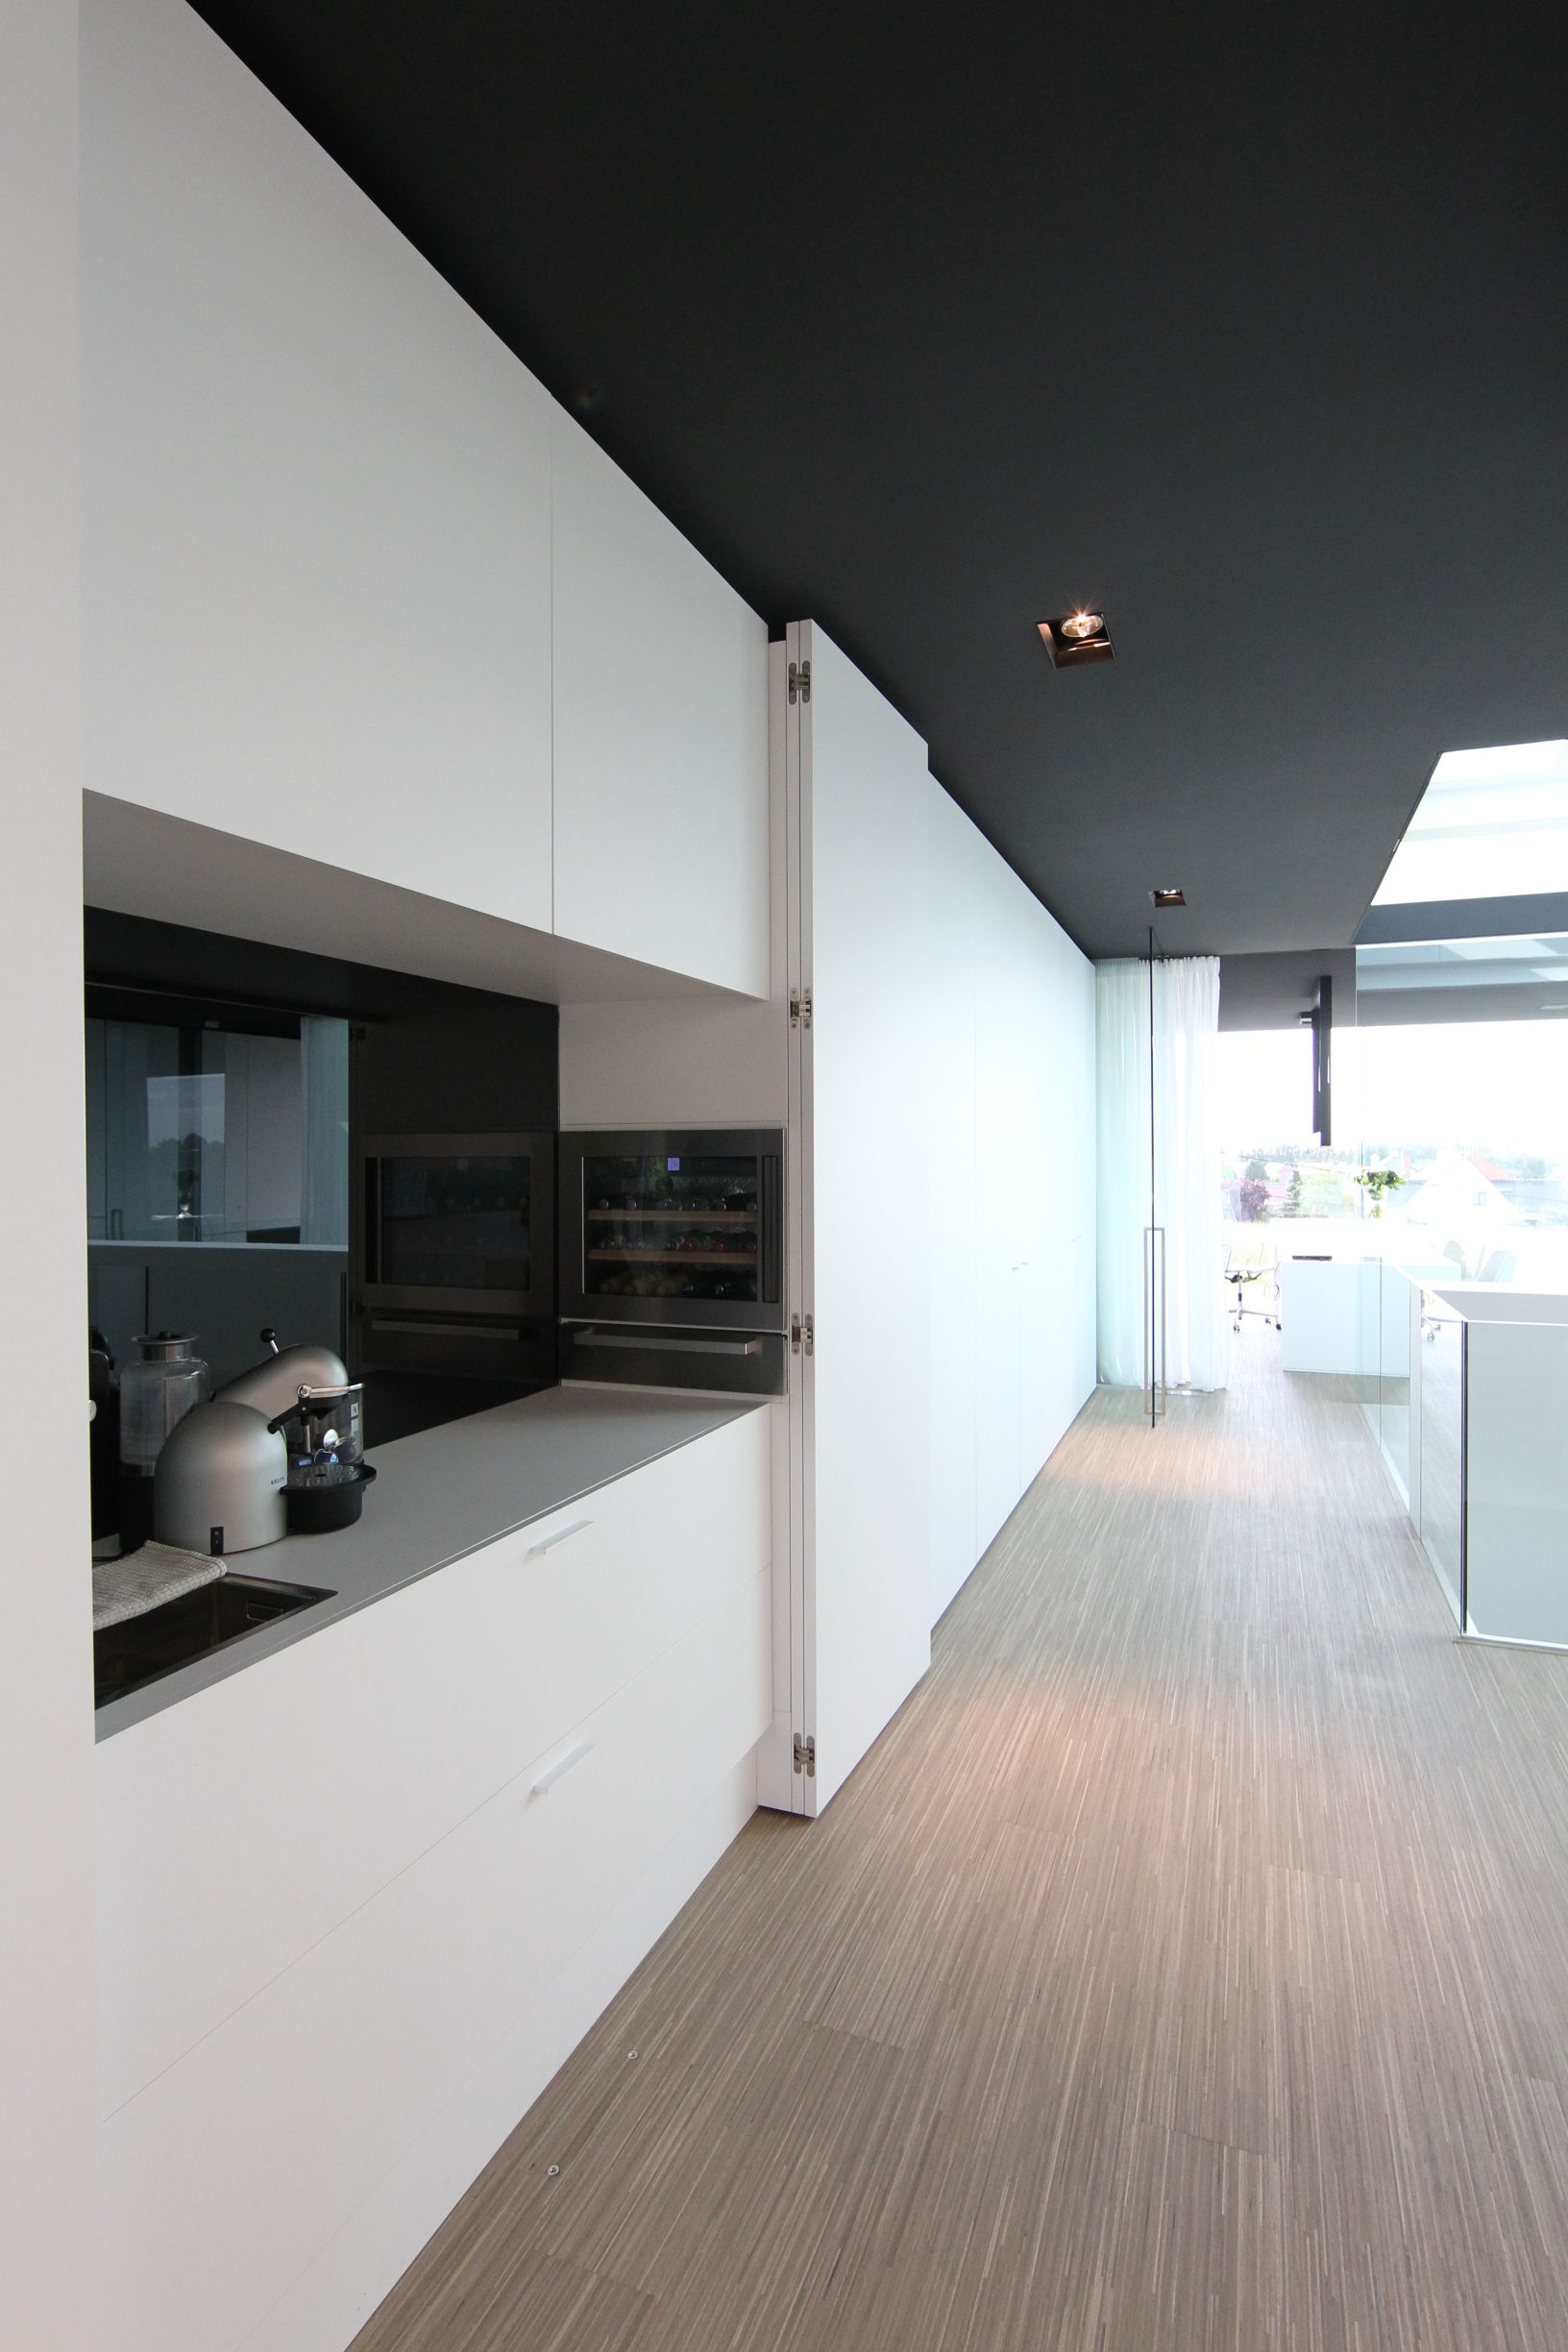 Minimalist Kitchen Design Pinterest Office At Luxhome With A Hide Away Kitchen Area With A